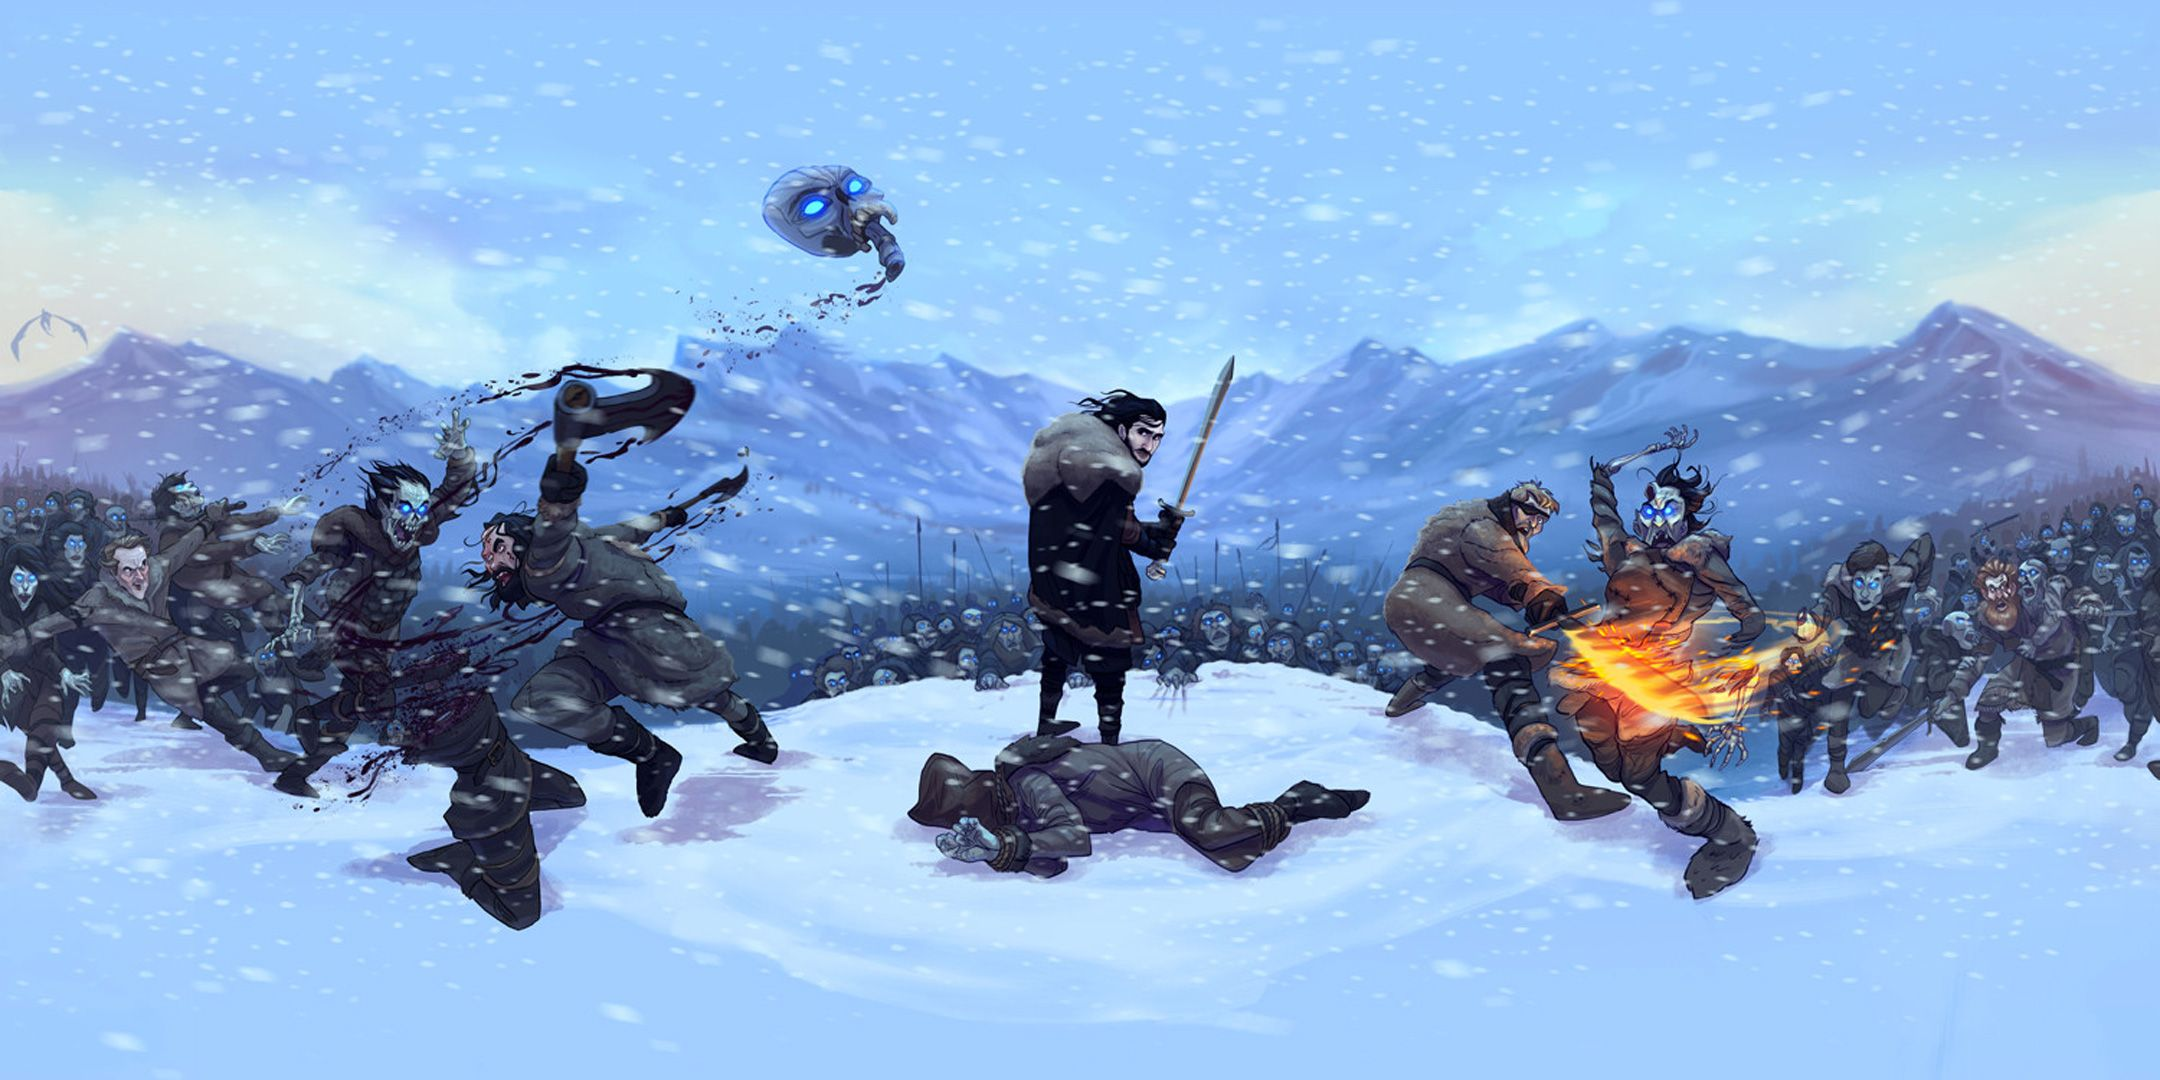 Game Of Thrones Beyond The Wall V7 Ultra Hd Wallpaper 2018